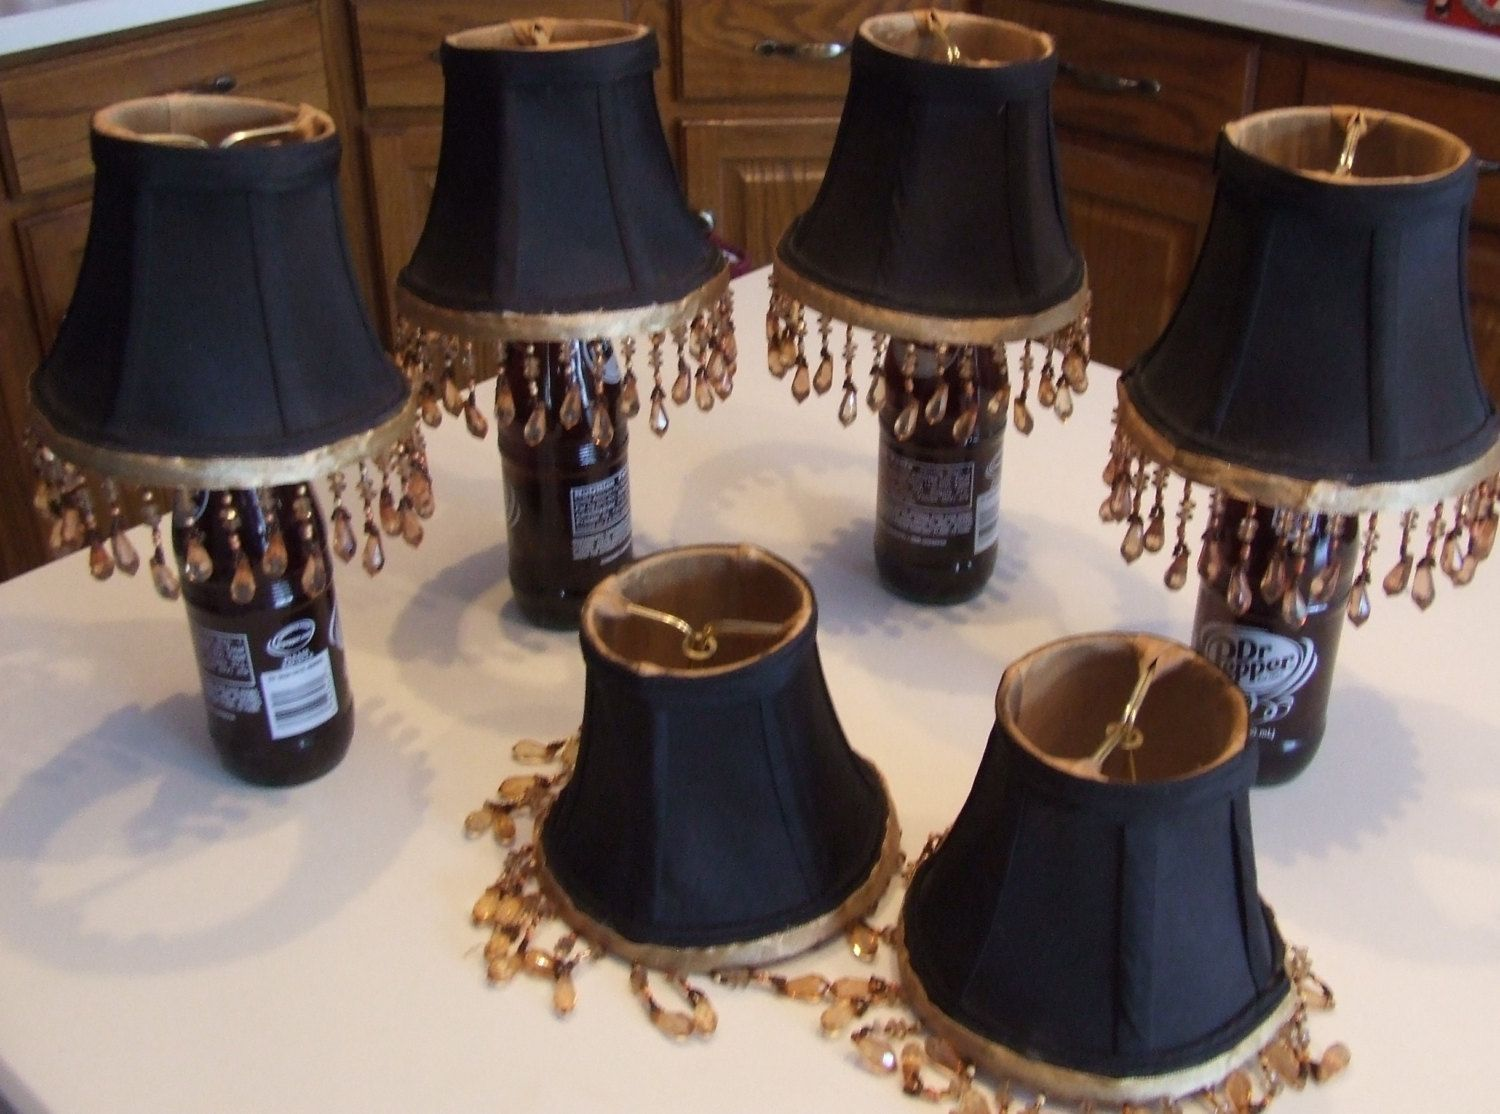 Chandelier Lamp Shades Mini Lamp Shades Black Lamp Shades With Bead Trim Mini Shades Vintage La Antique Lamp Shades Small Lamp Shades Industrial Lamp Shade